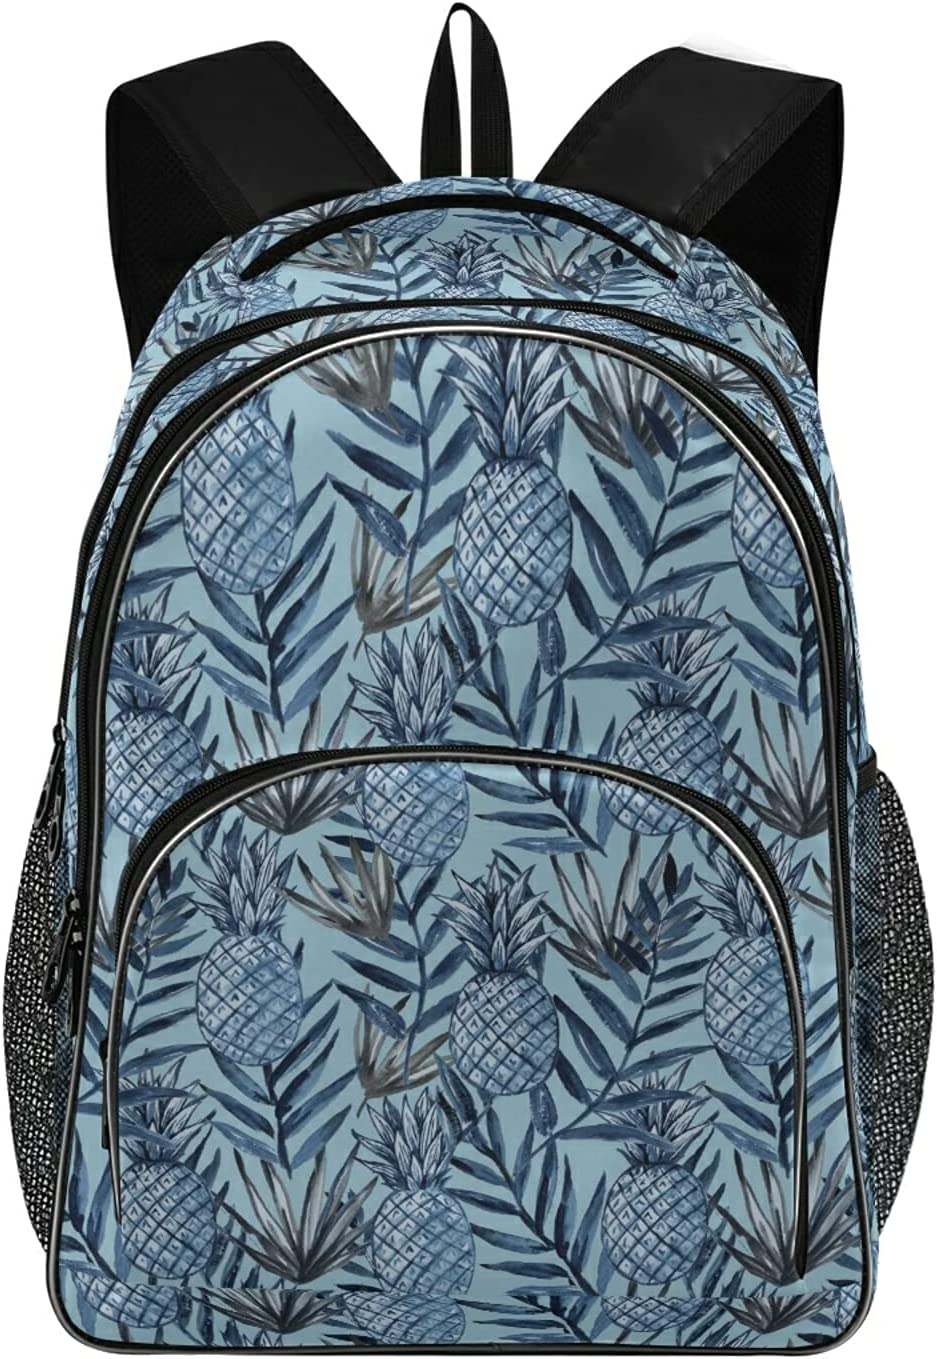 ALAZA Retro Pineapples and Tropical Max 61% OFF Lapt Leaves National products Daypack Backpack